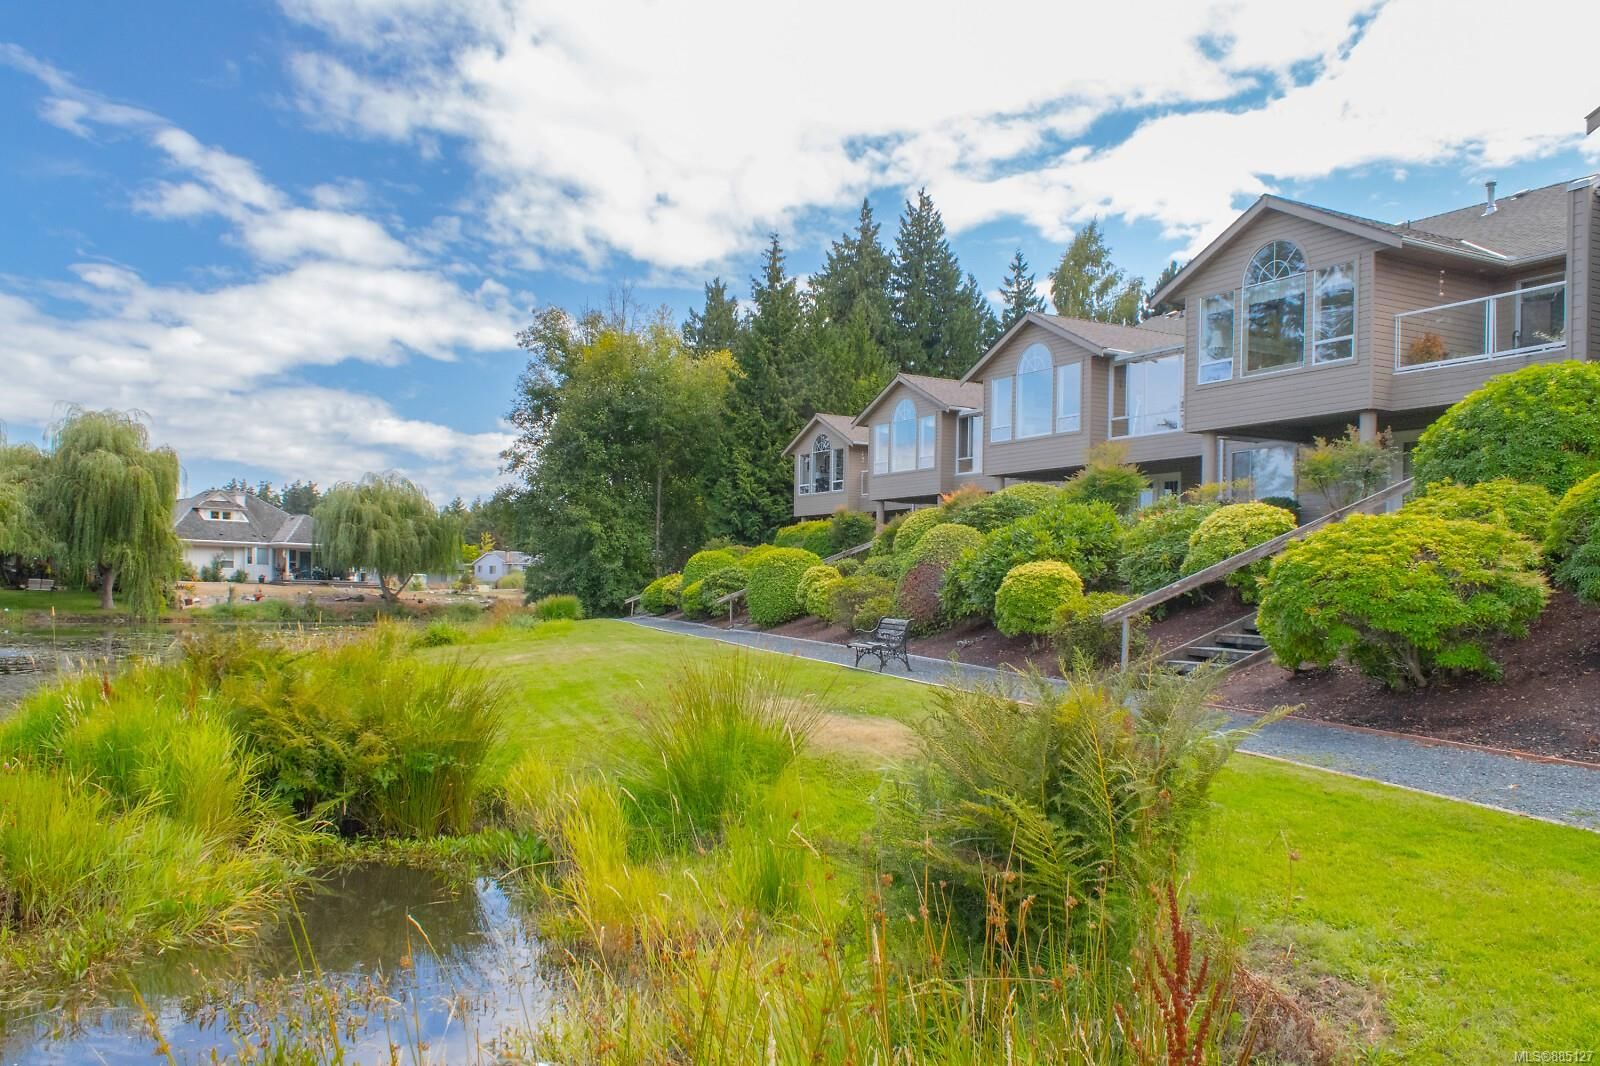 Photo 61: Photos: 26 529 Johnstone Rd in : PQ French Creek Row/Townhouse for sale (Parksville/Qualicum)  : MLS®# 885127